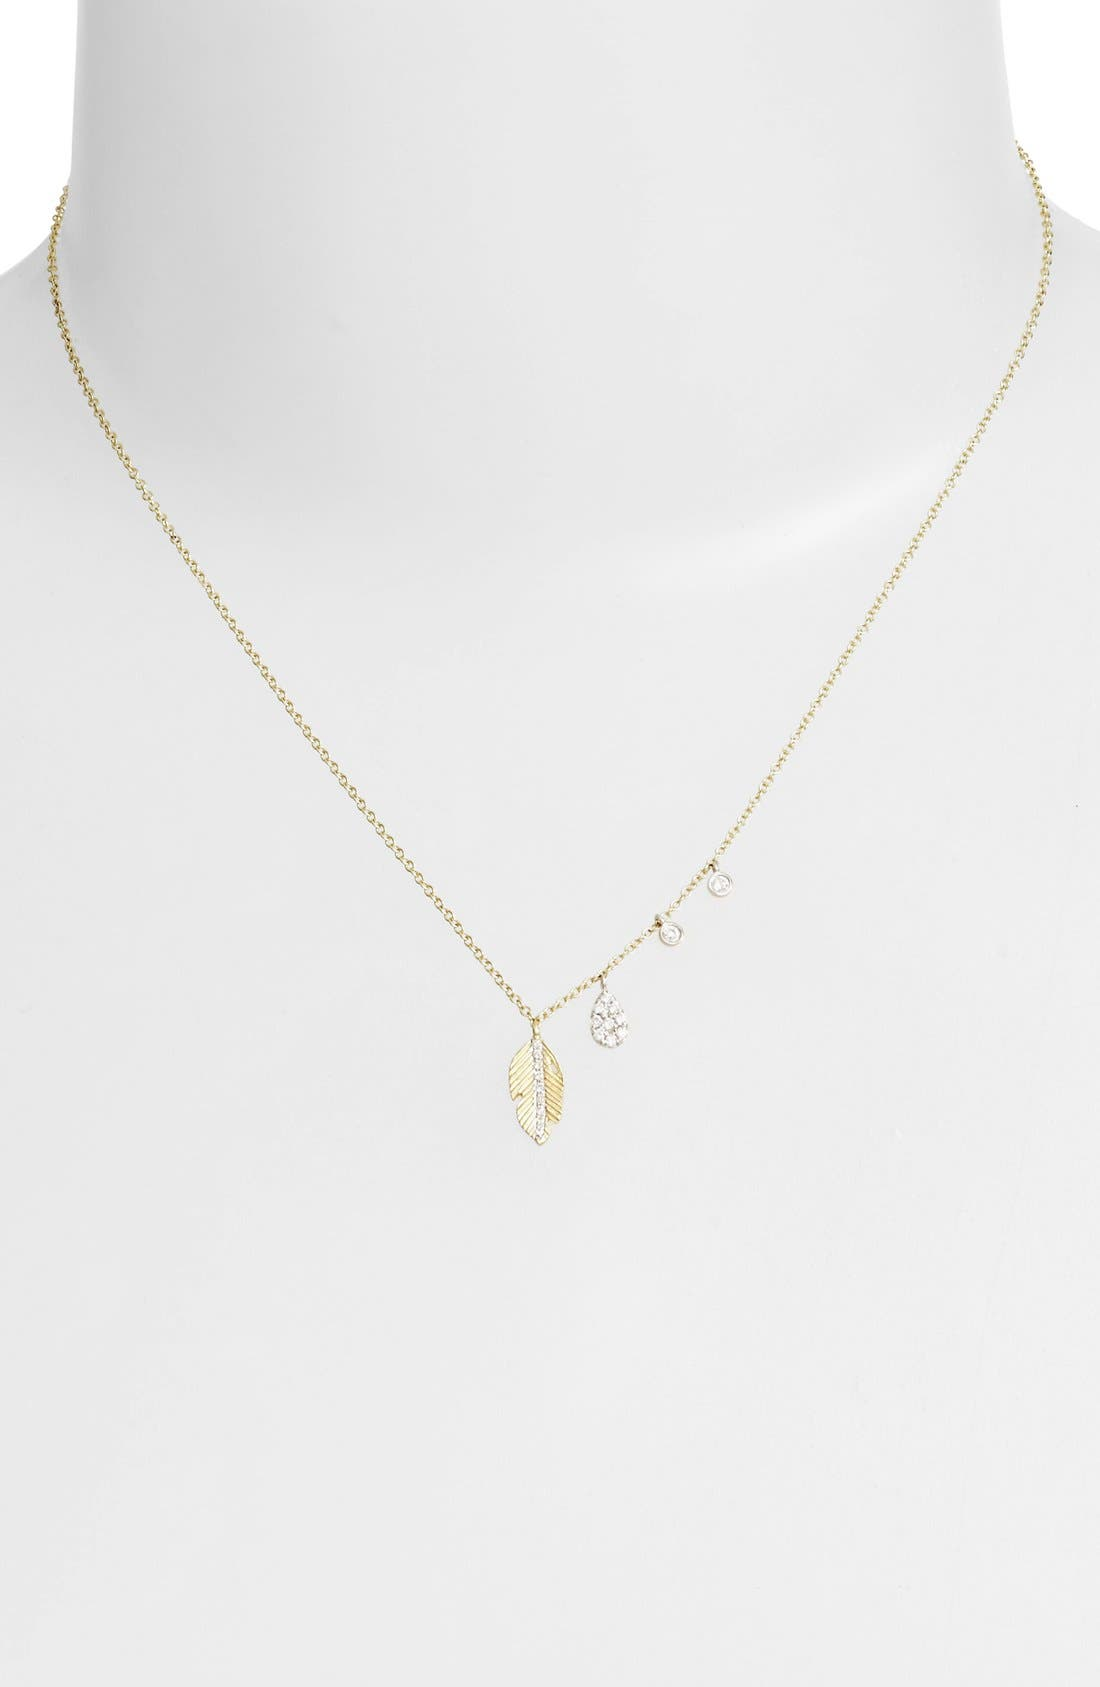 Leaf Pendant Necklace,                             Alternate thumbnail 2, color,                             YELLOW GOLD/ WHITE GOLD